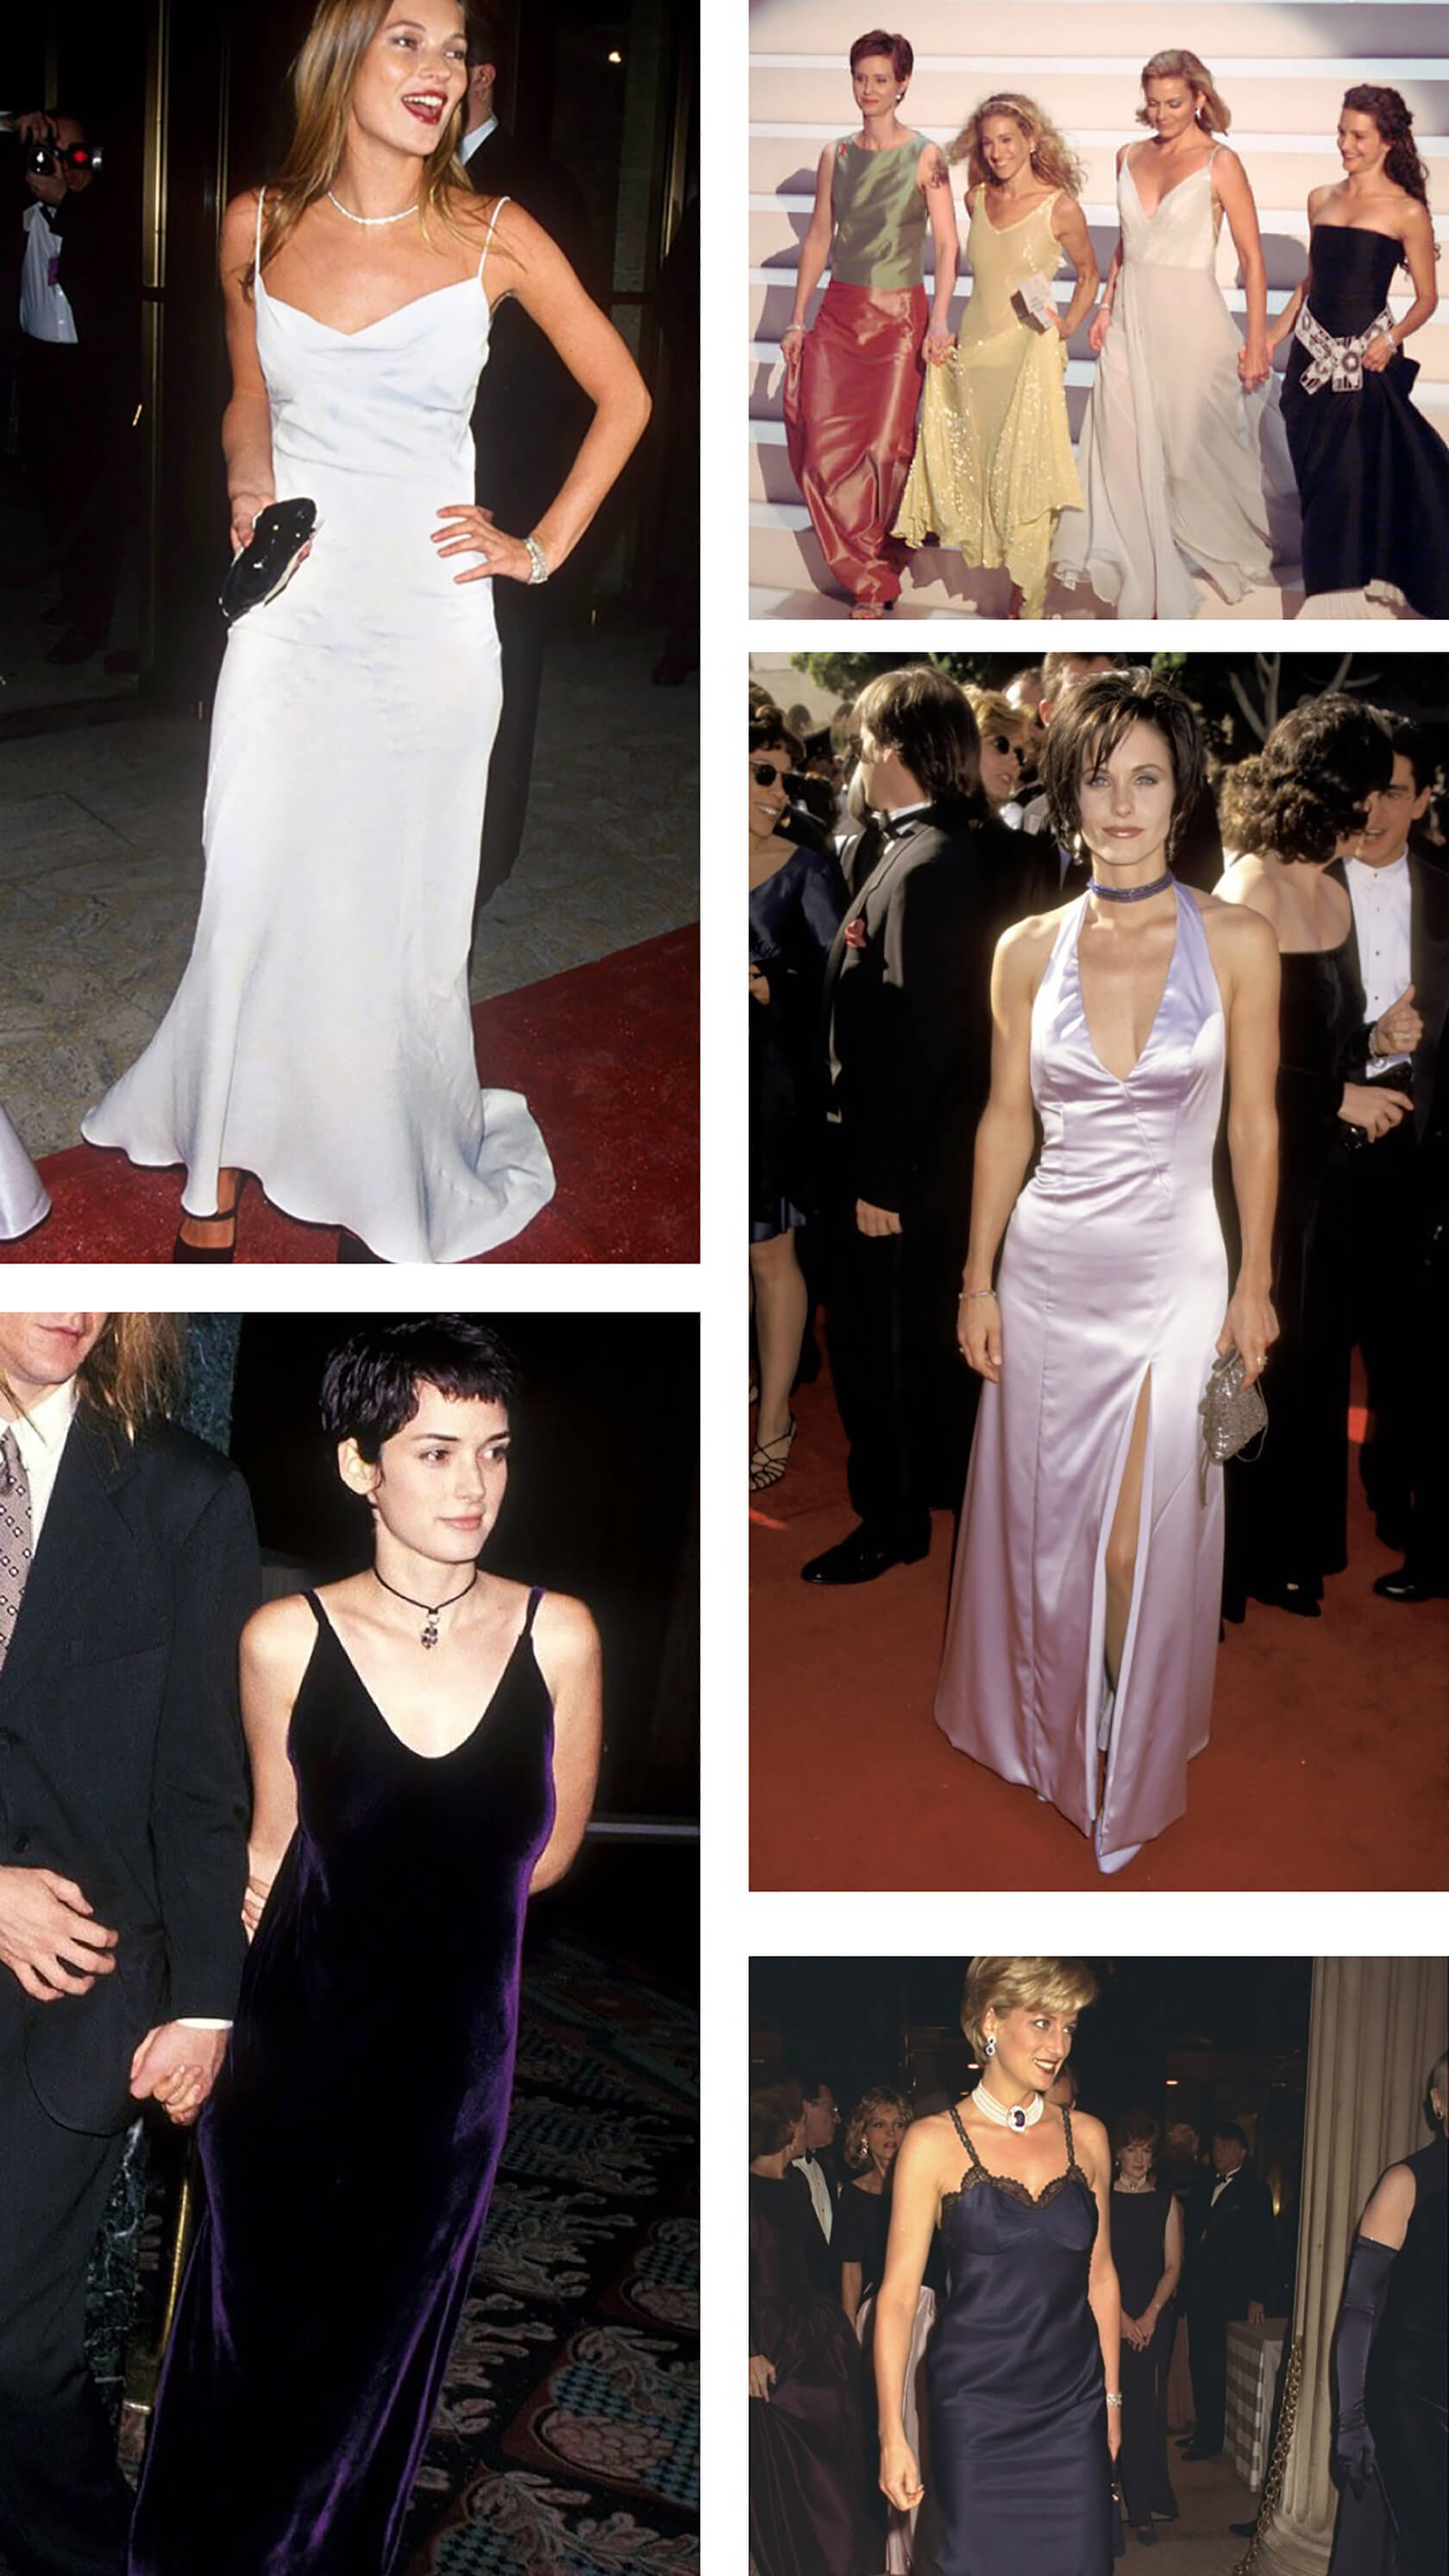 Sydne Style shows what to wear to 90s prom party with 90s red carpet gown inspiration